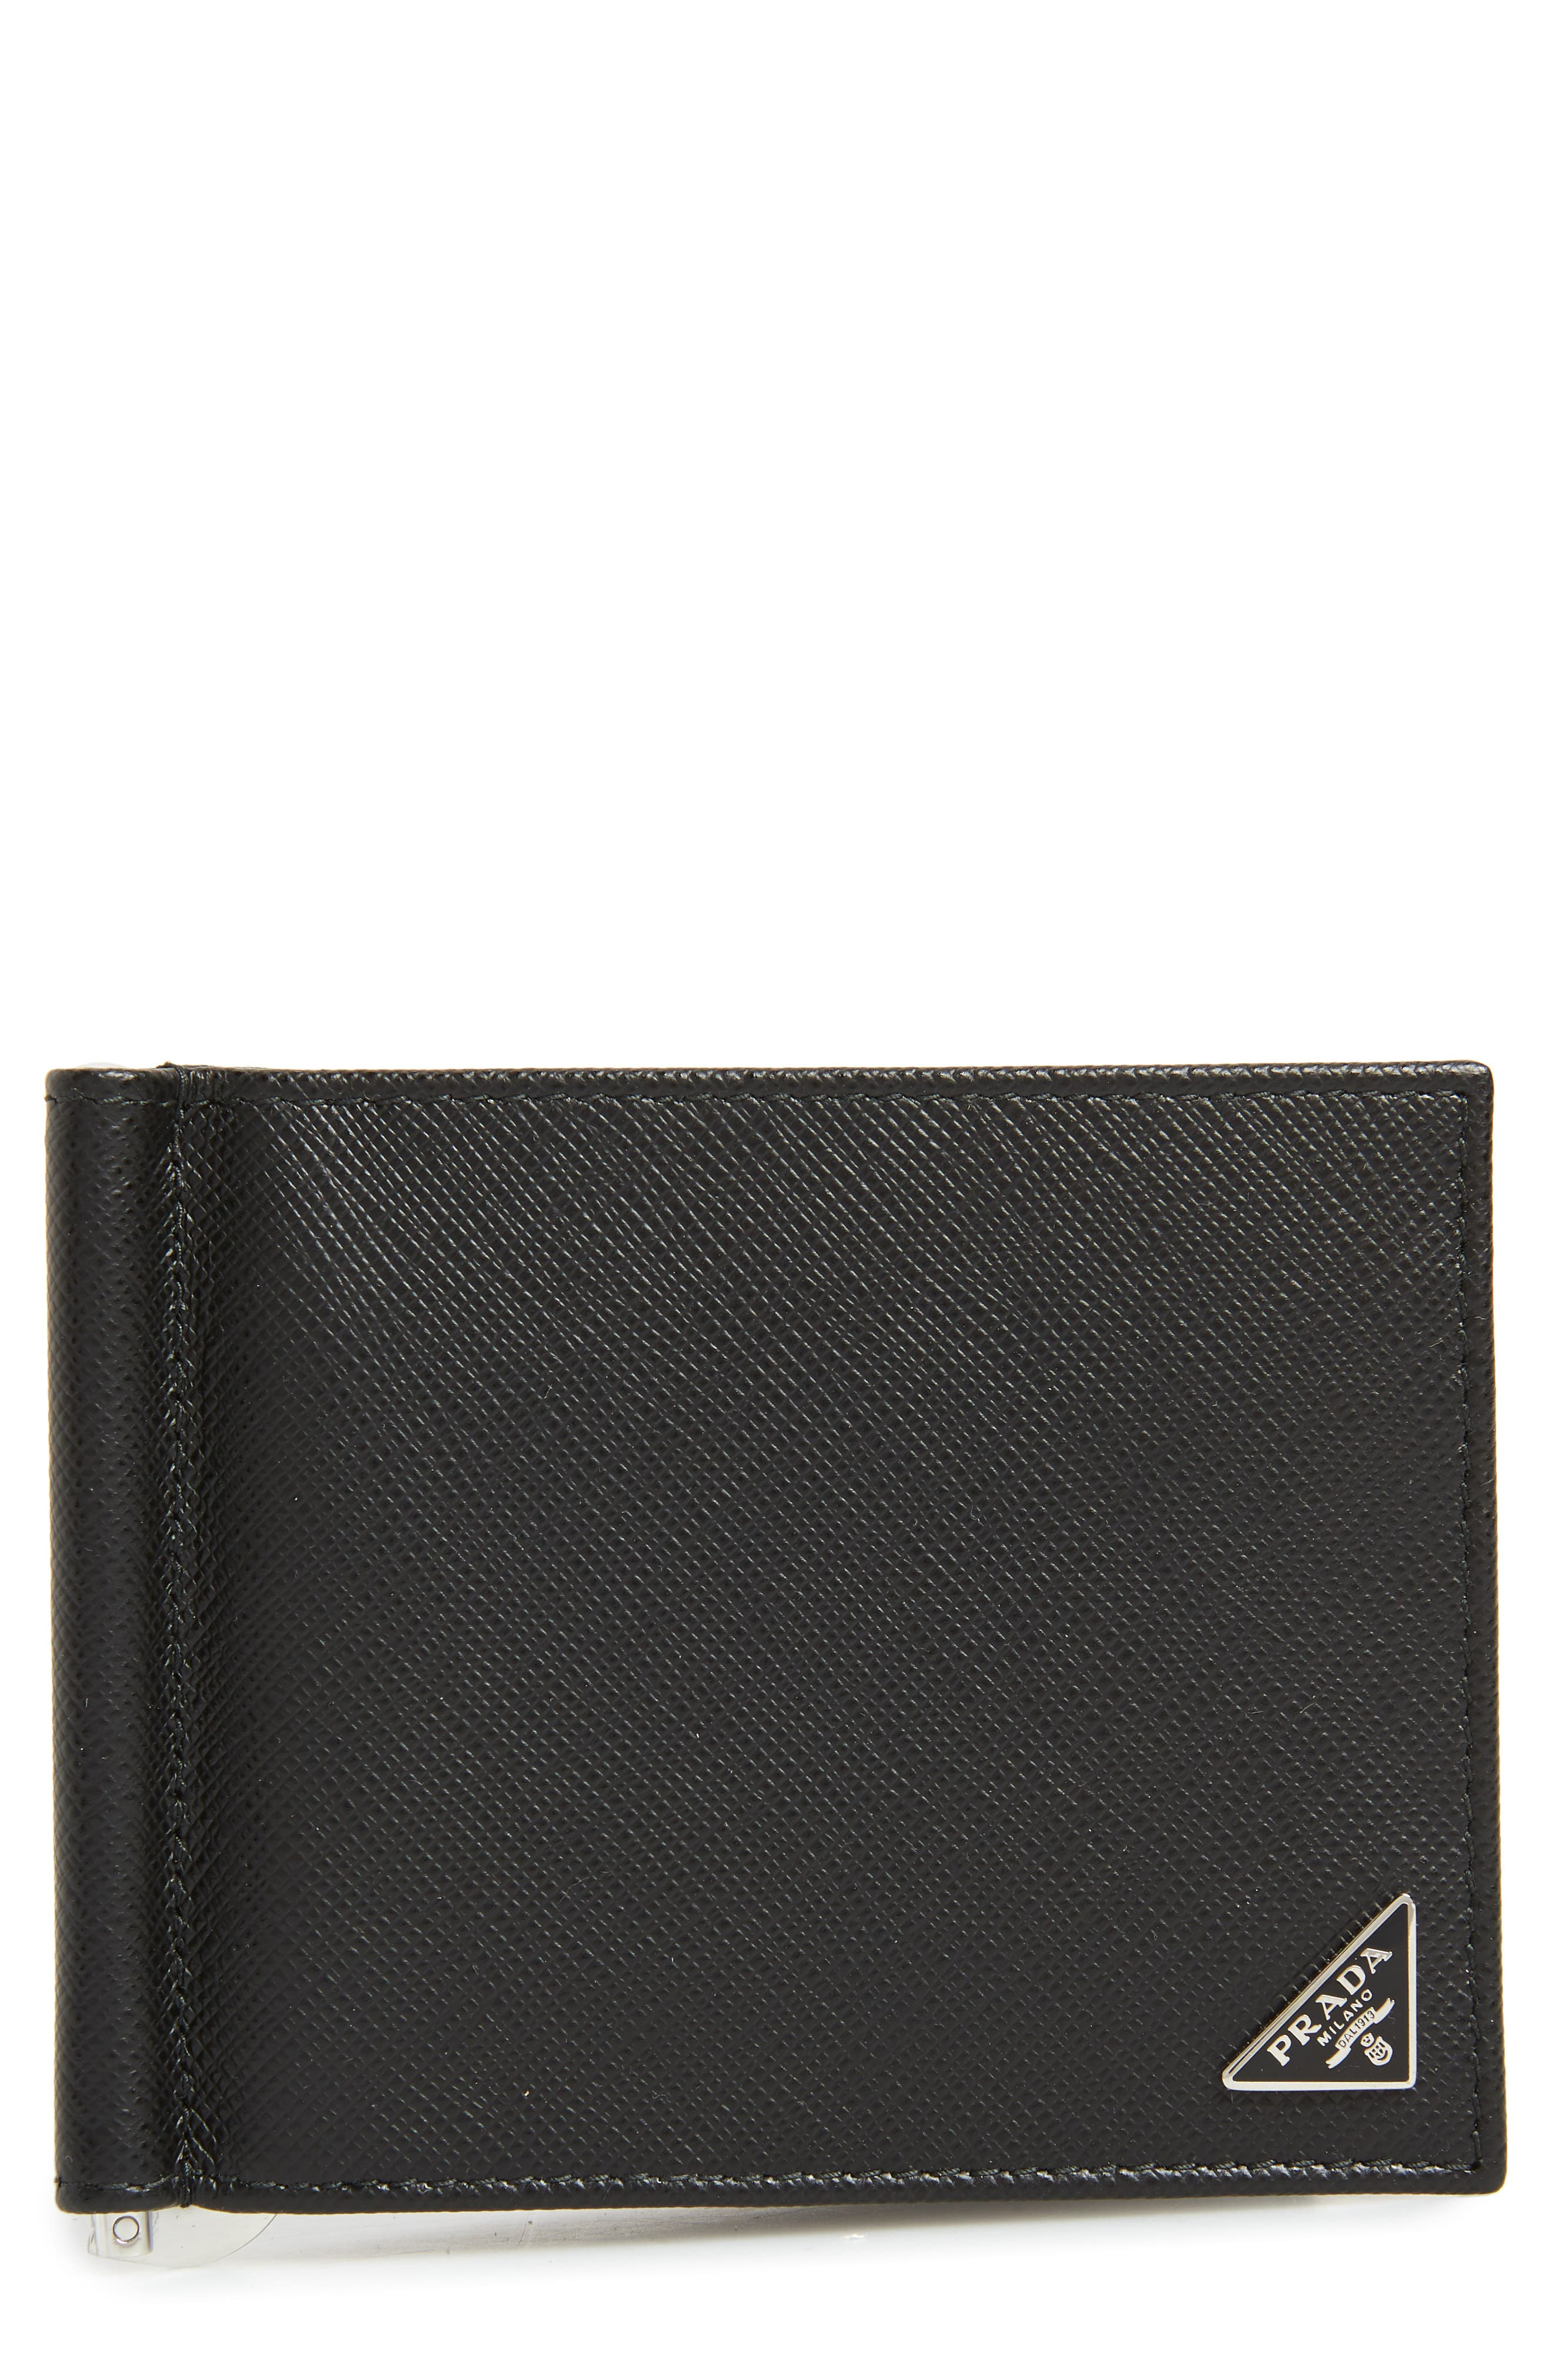 Prada Saffiano Leather Money Clip Wallet